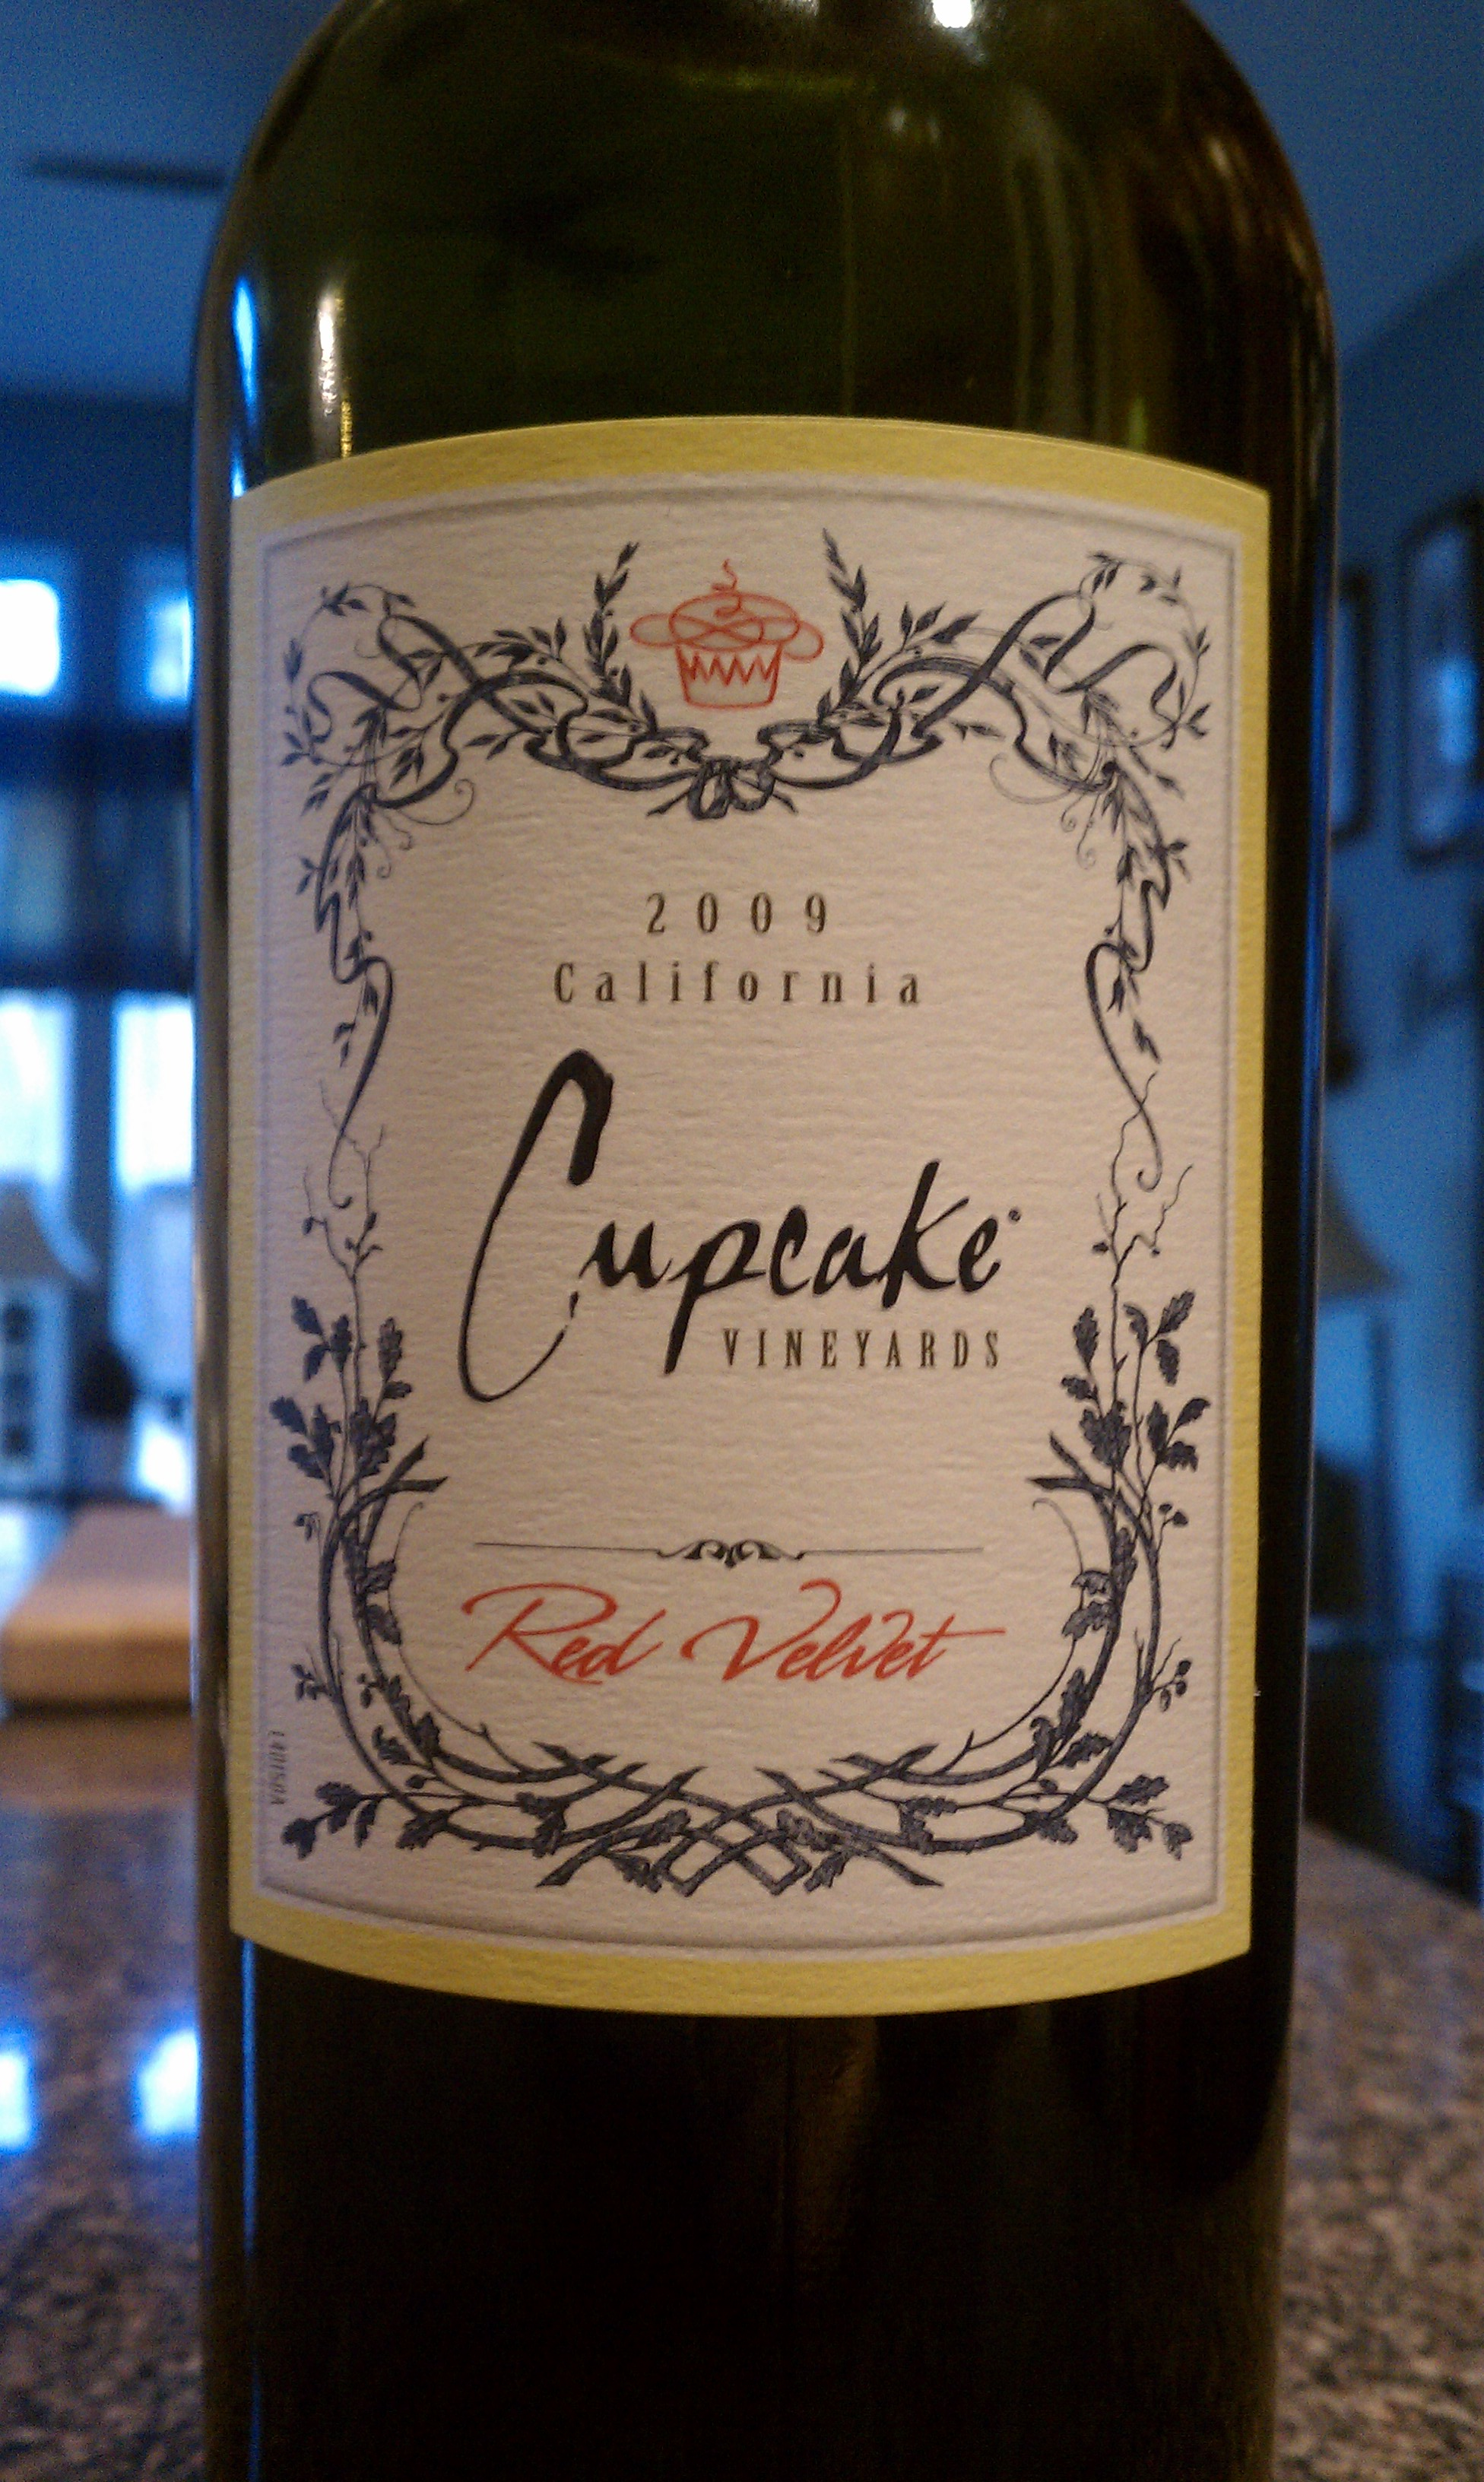 2009 Cupcake Vineyards Red Velvet | Zinfandel | Merlot | Cabernet ...